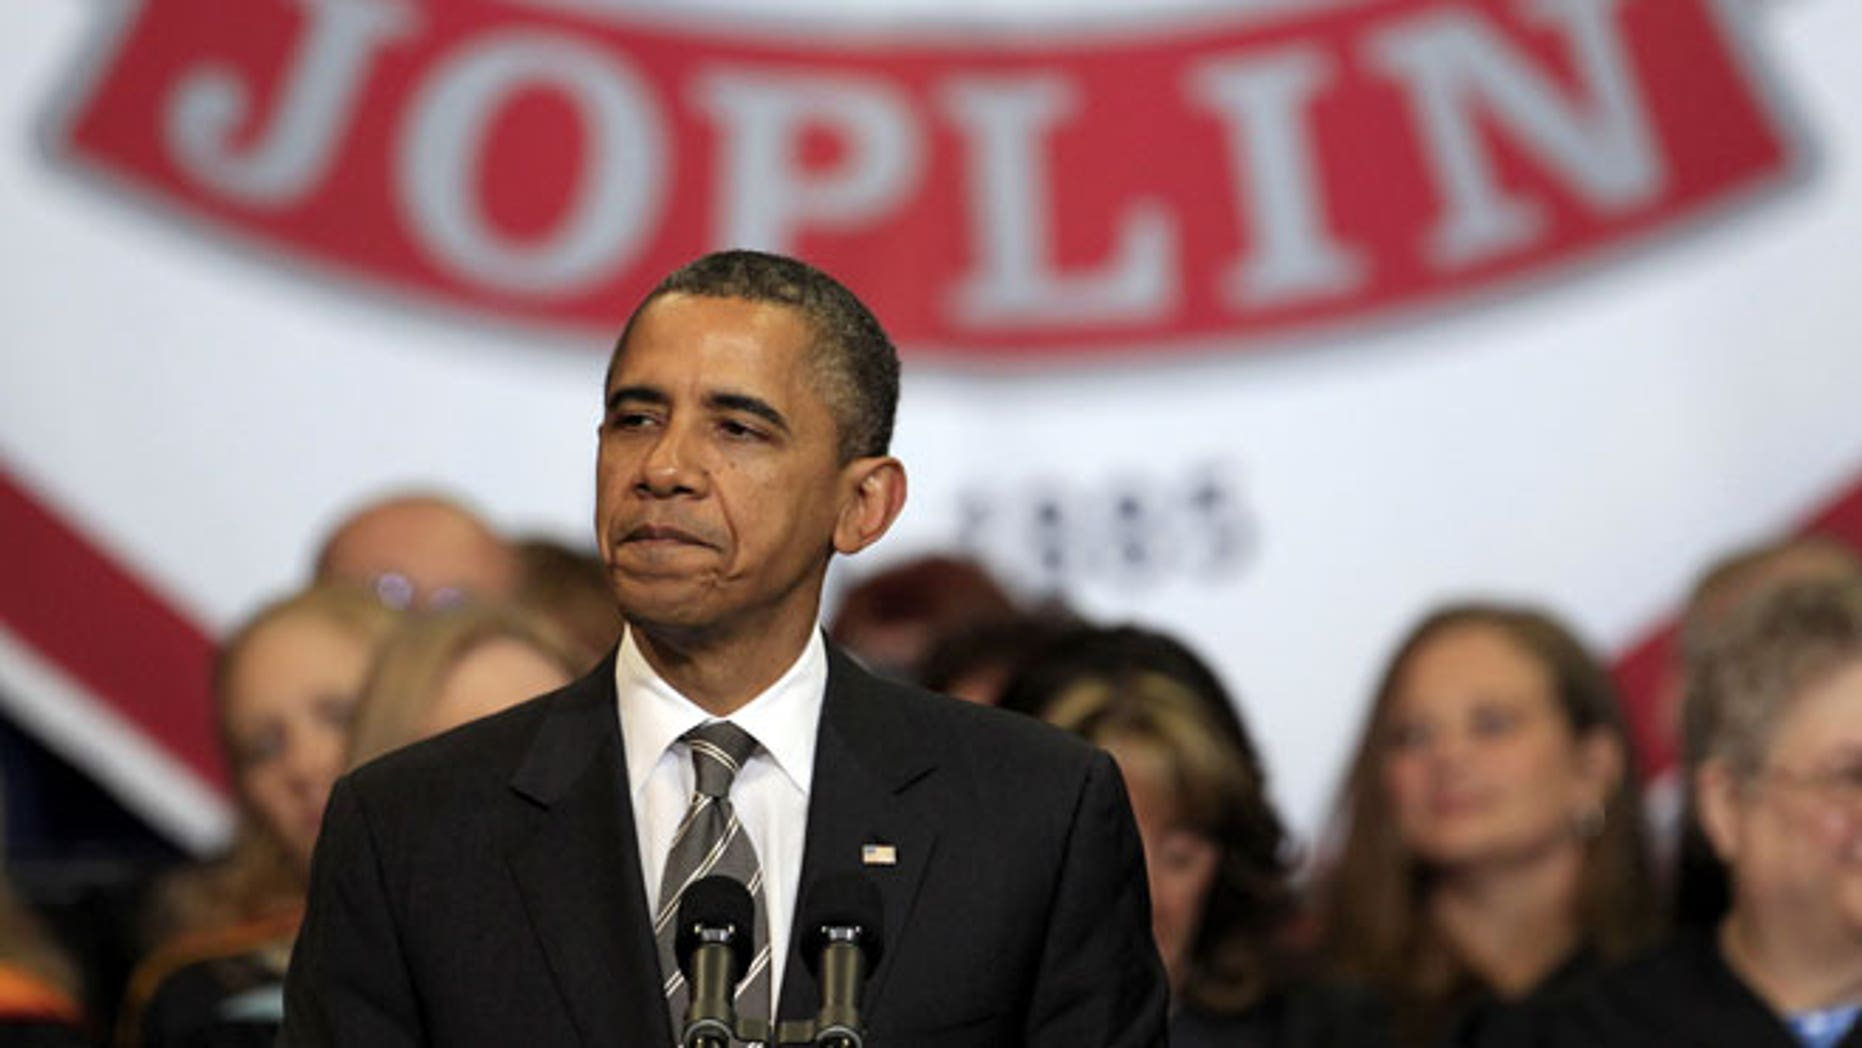 May 21, 2012: President Barack Obama delivers the commencement address to graduates of Joplin High School in Joplin, Mo.